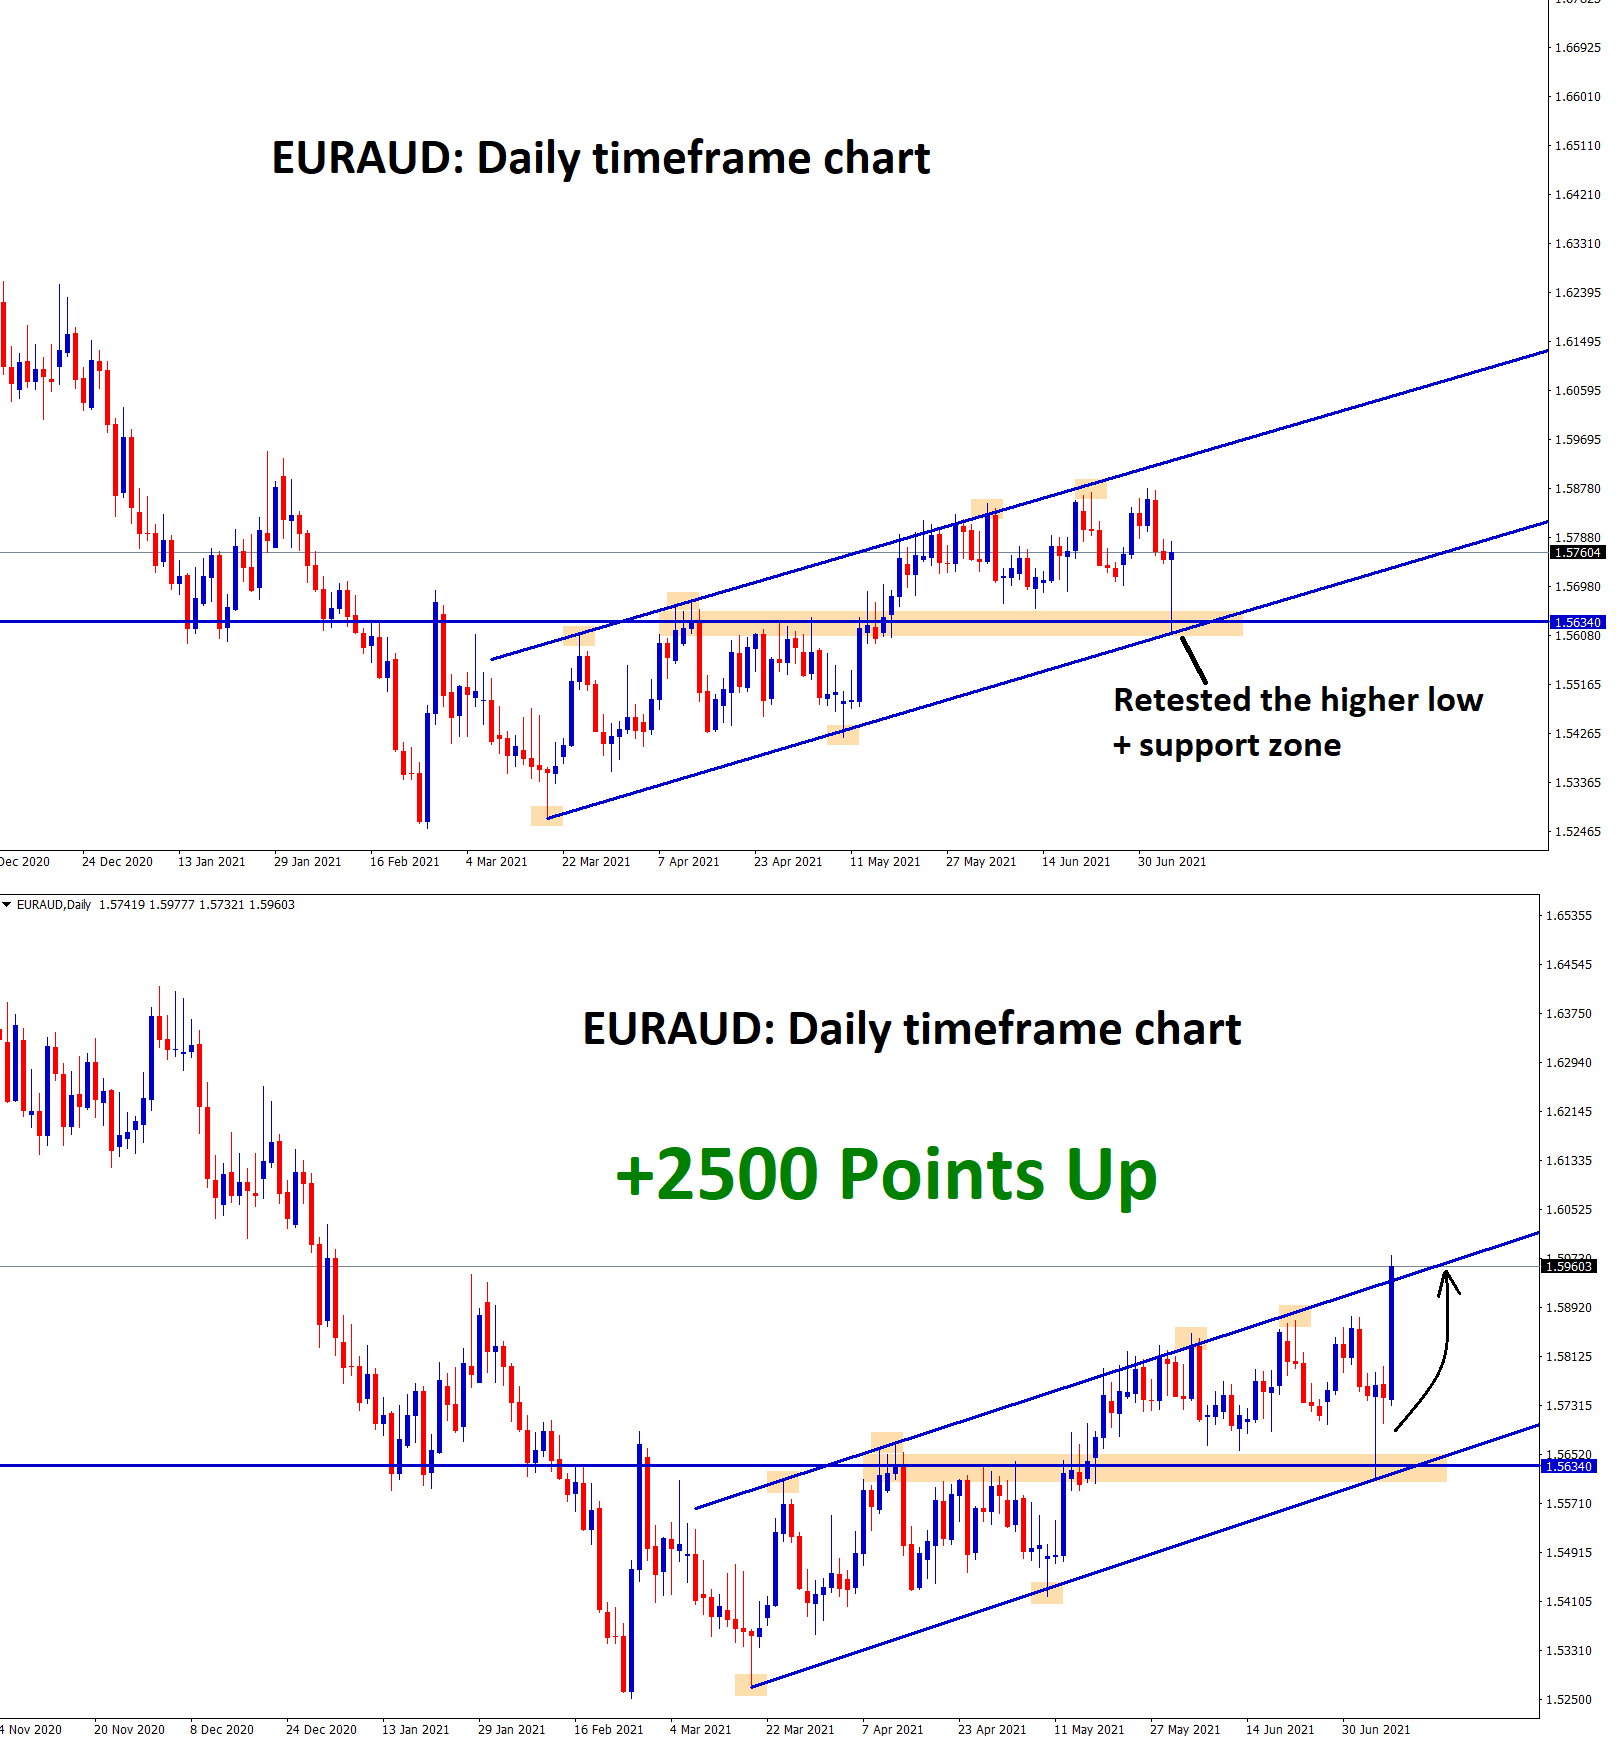 EURAUD retested the higher low of trend and support zone 1